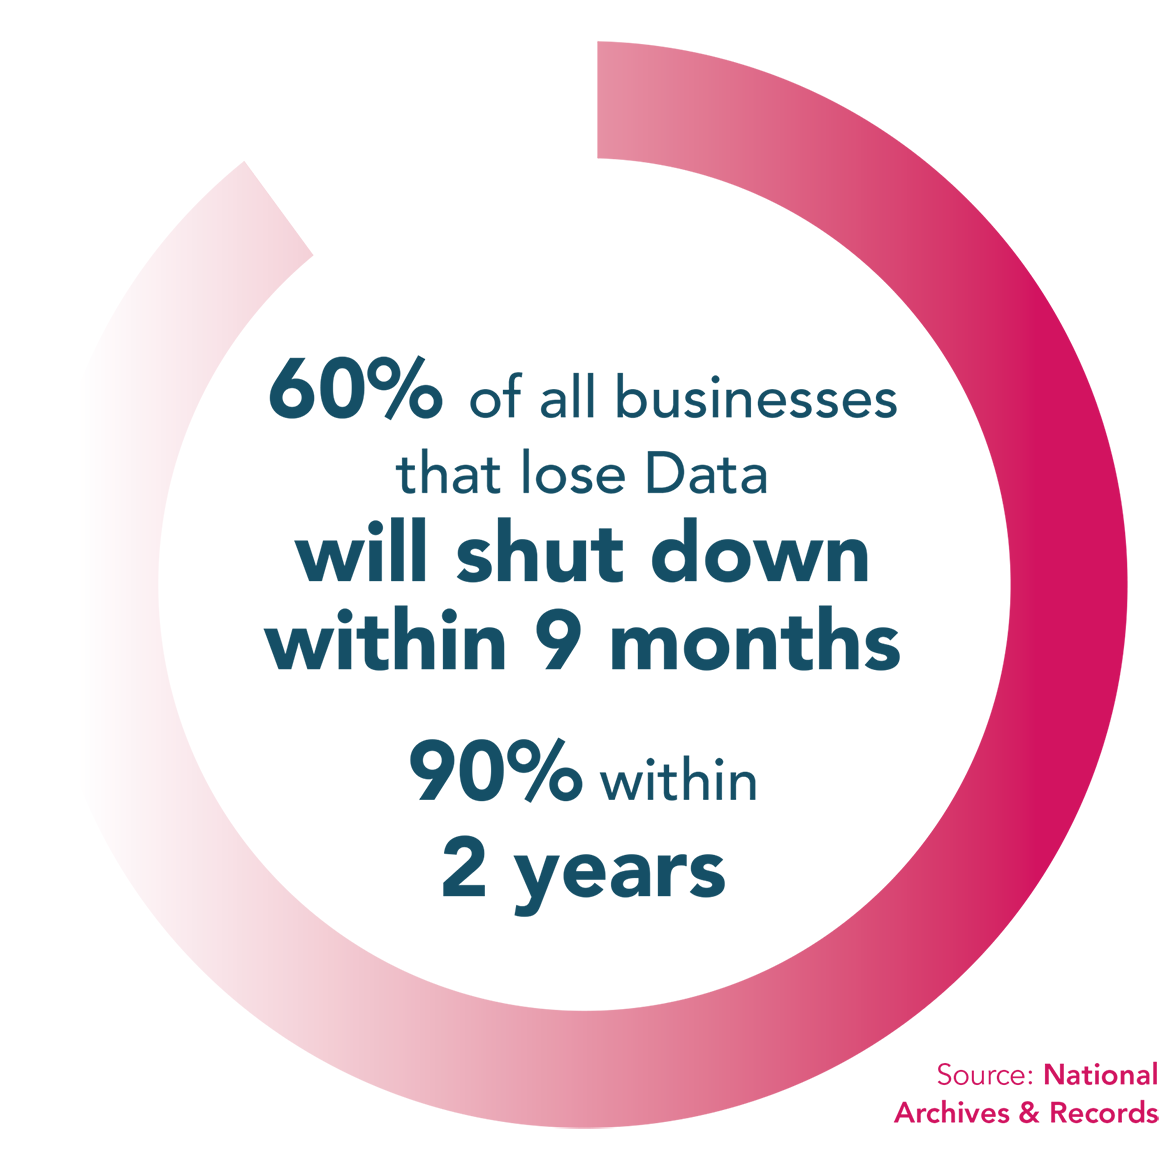 60% of all businesses that lose data will shut down within 9 months